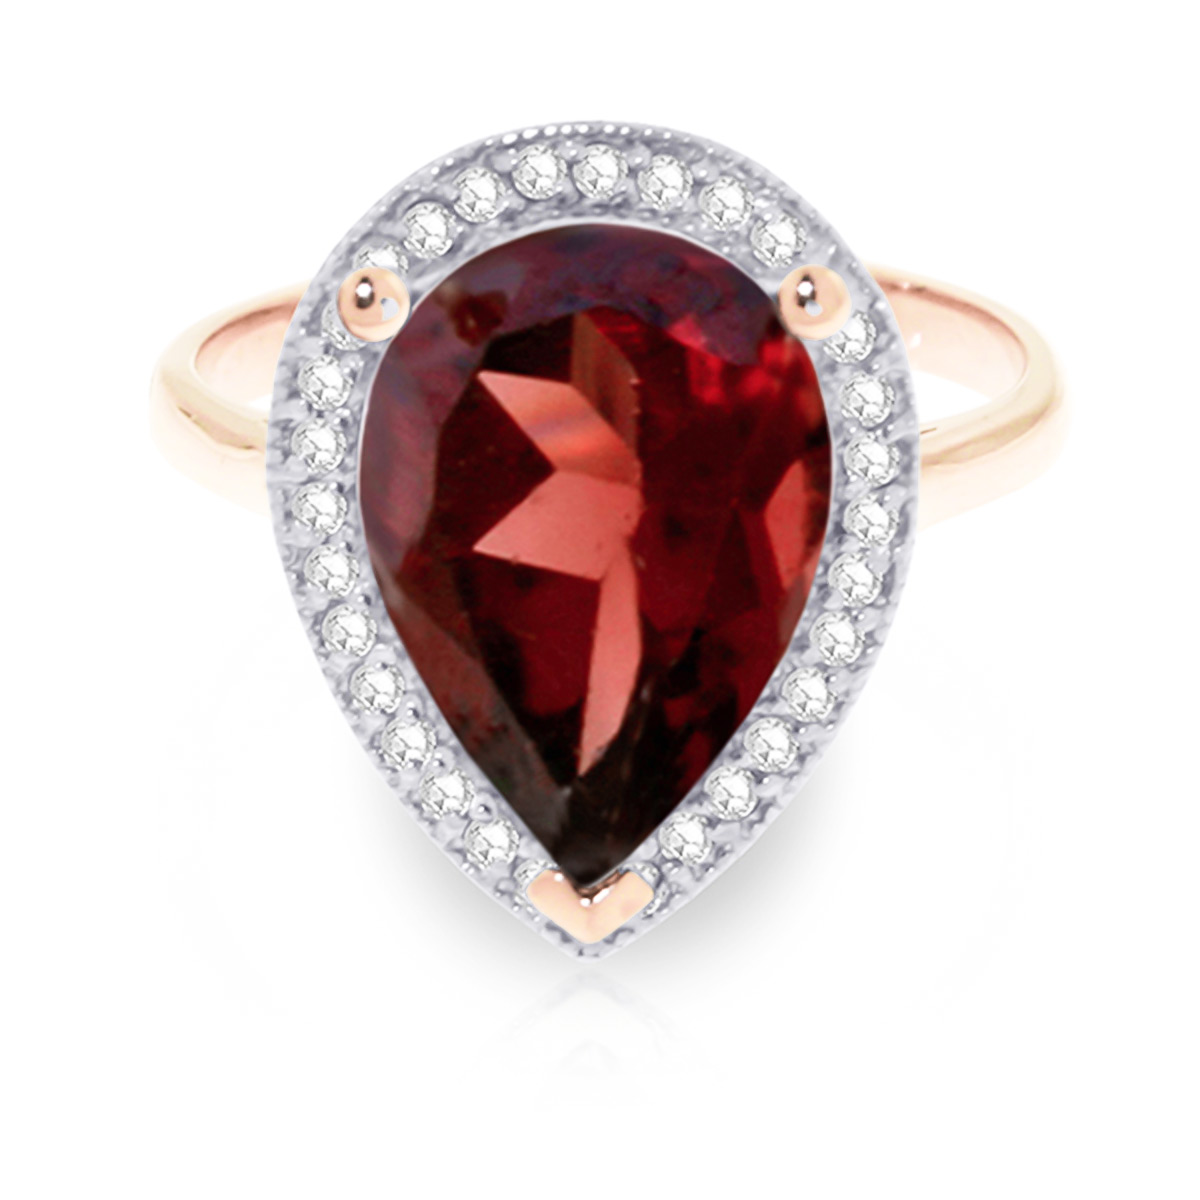 Garnet and Diamond Halo Ring 3.9ct in 9ct Rose Gold